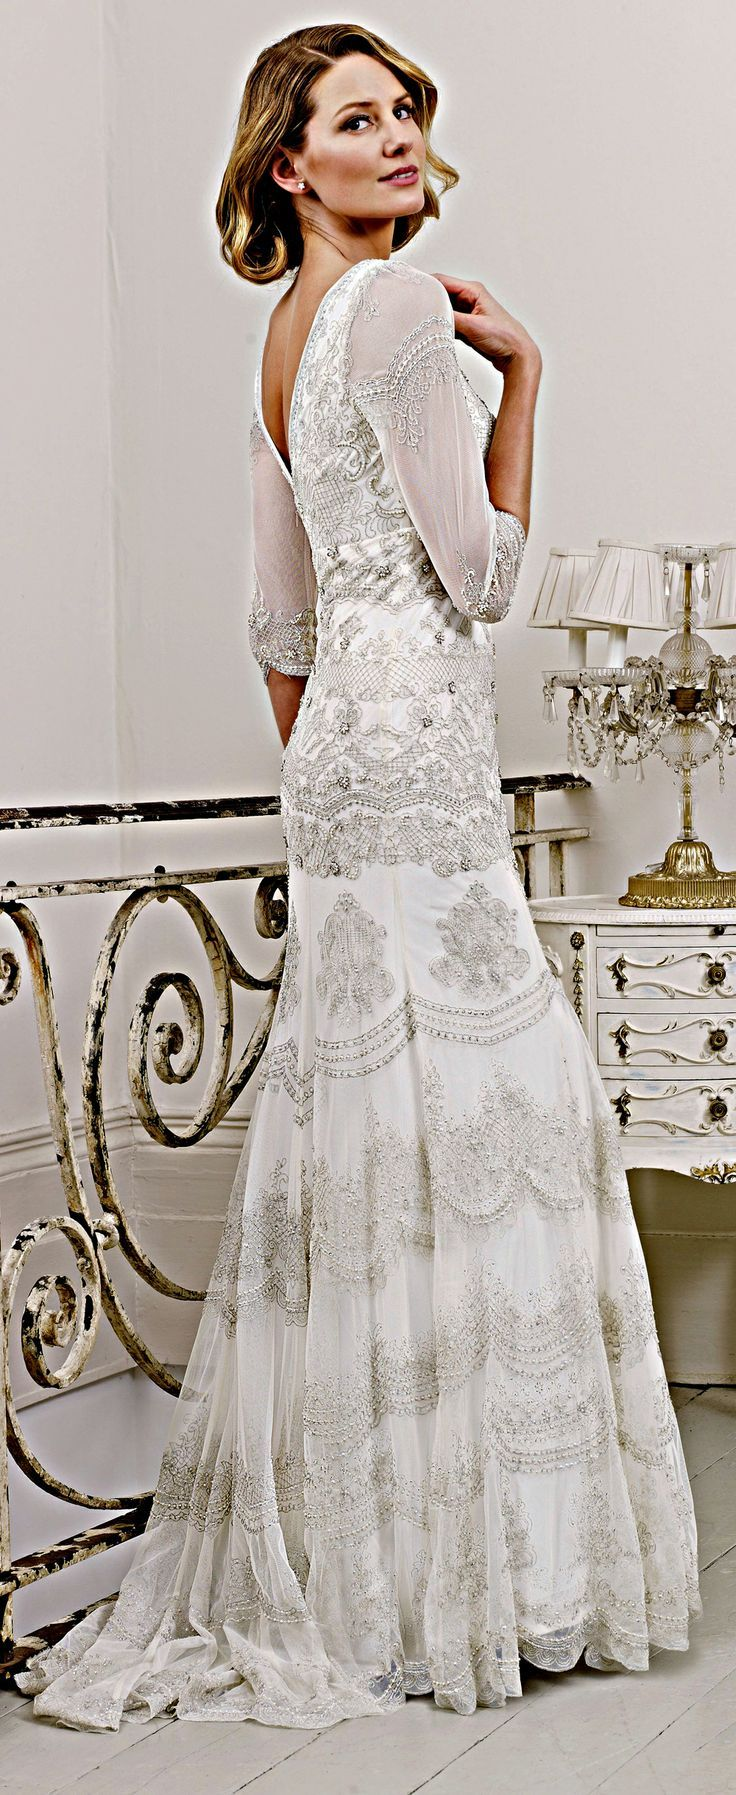 best Renewing Vows images on Pinterest Vow renewals Vow